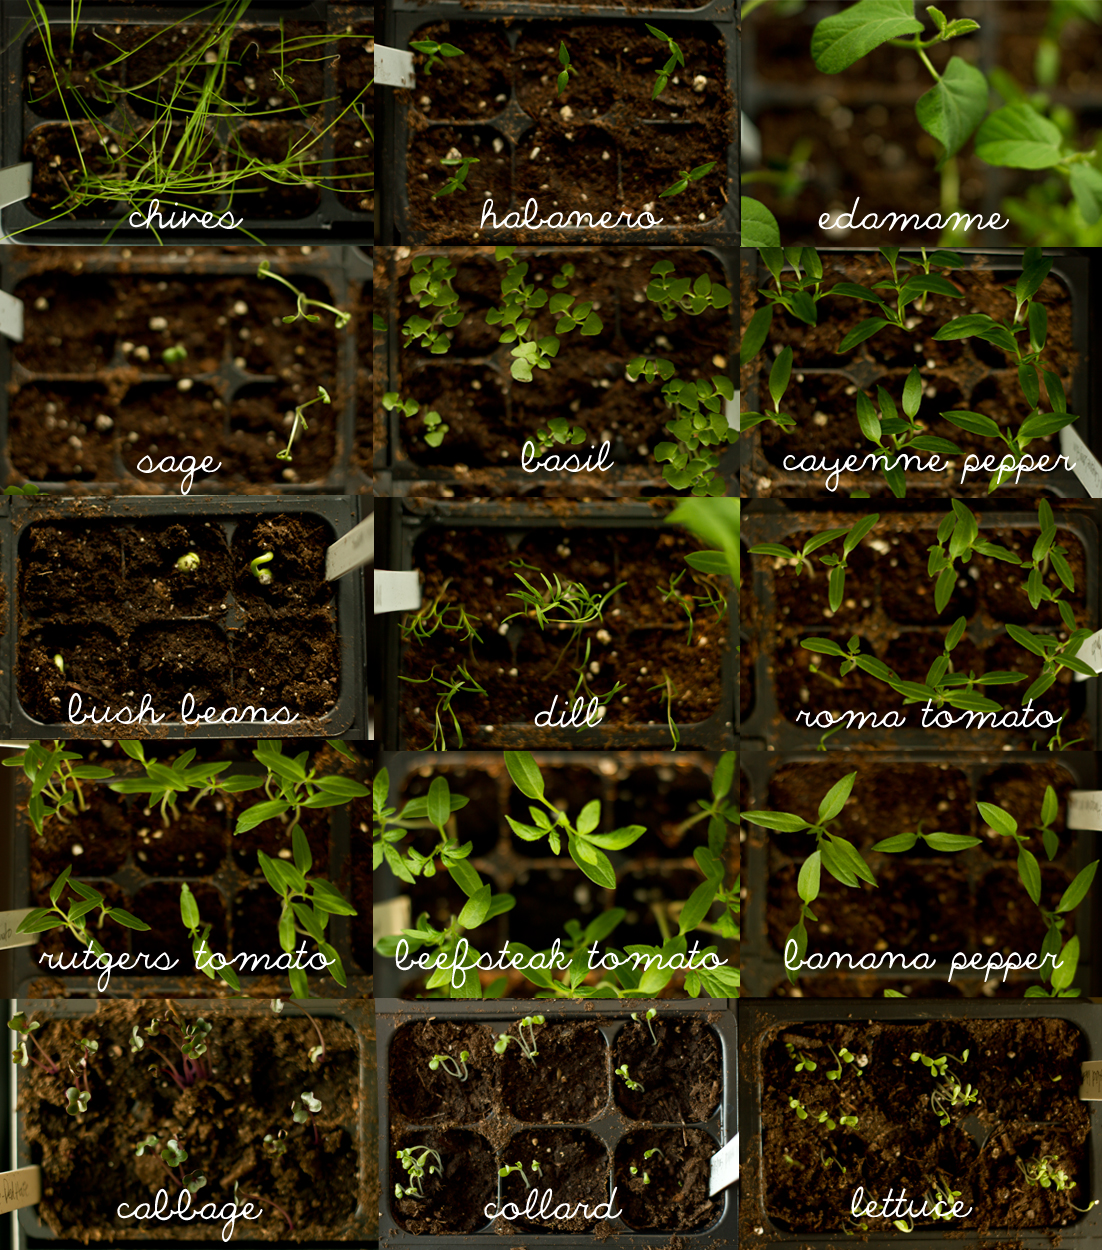 Some of this year's seedlings.